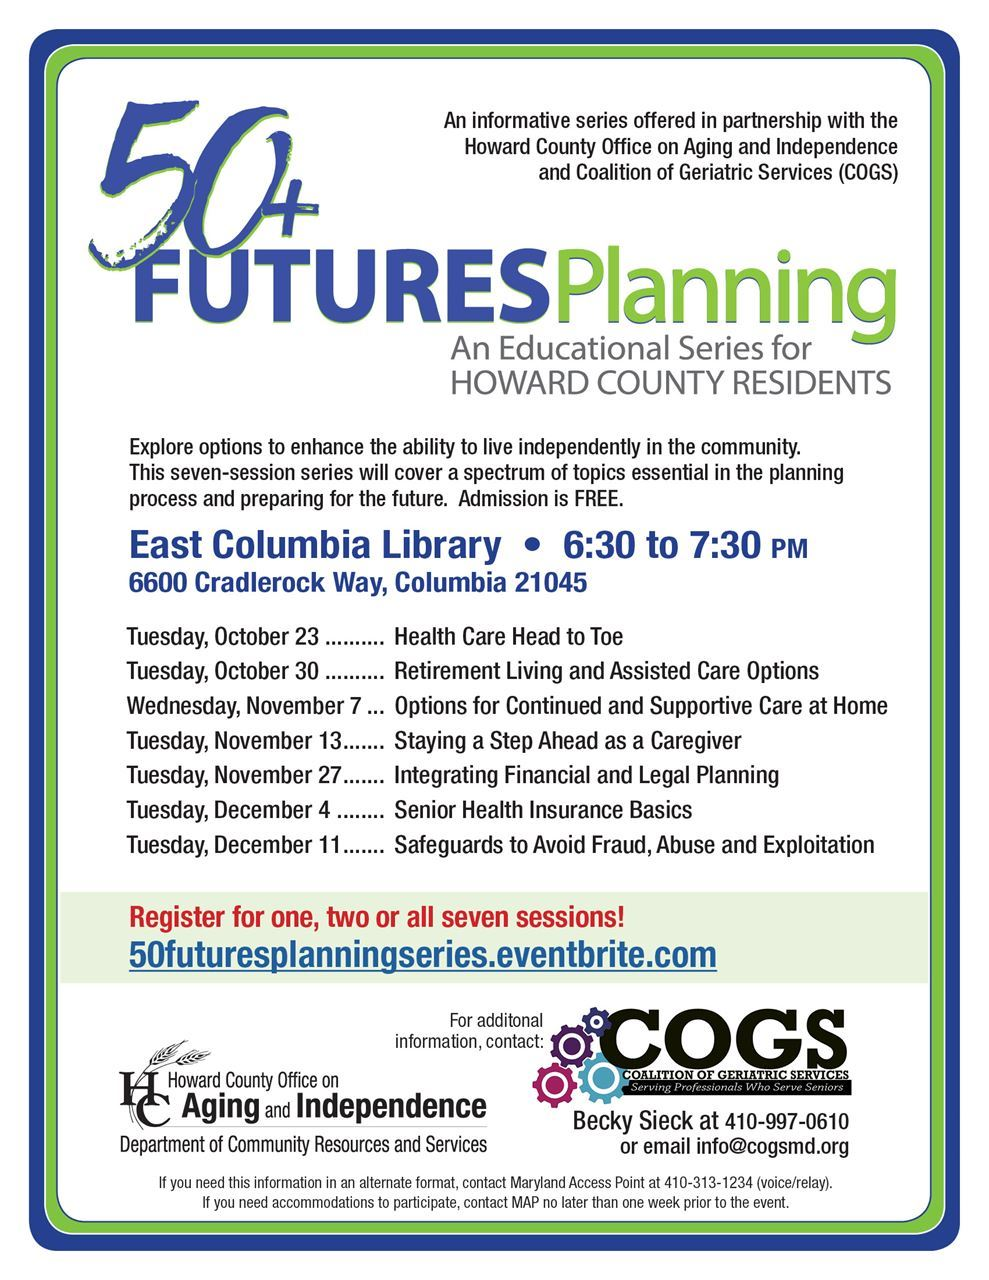 Coalition Of Geriatric Services 50 Futures Planning Series Electromagnetic Relay Basics Spaces Are Limited For More Information Regarding Specific Dates And Events To Register Check Out Our Eventbrite By Clicking Here